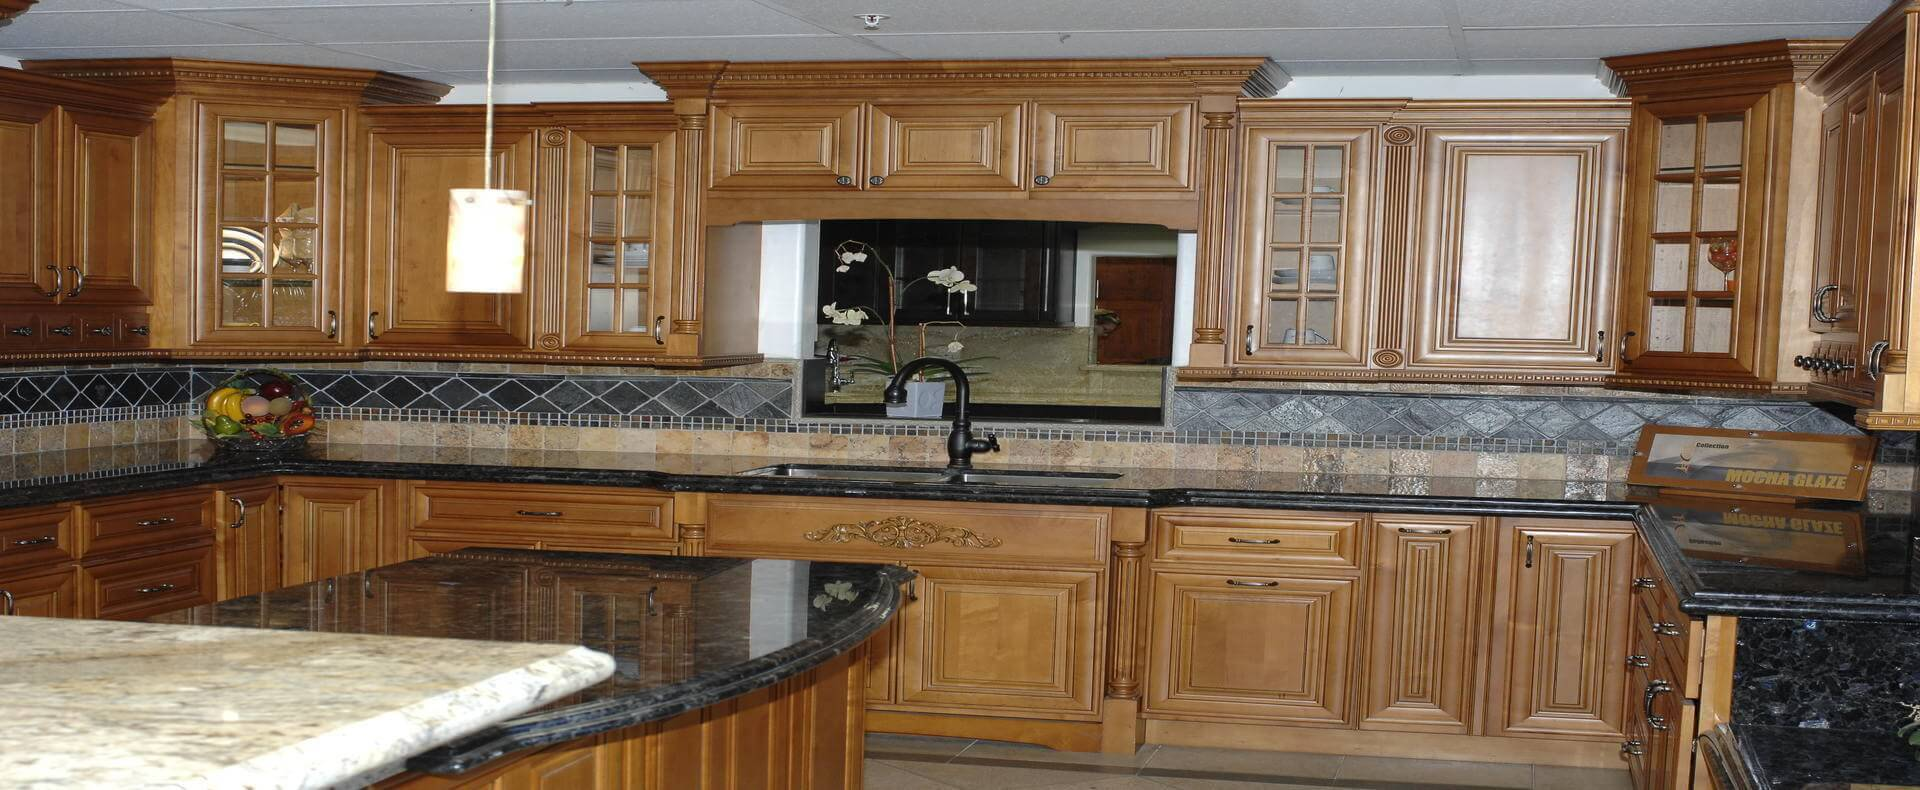 405 Cabinets  Stone  Products